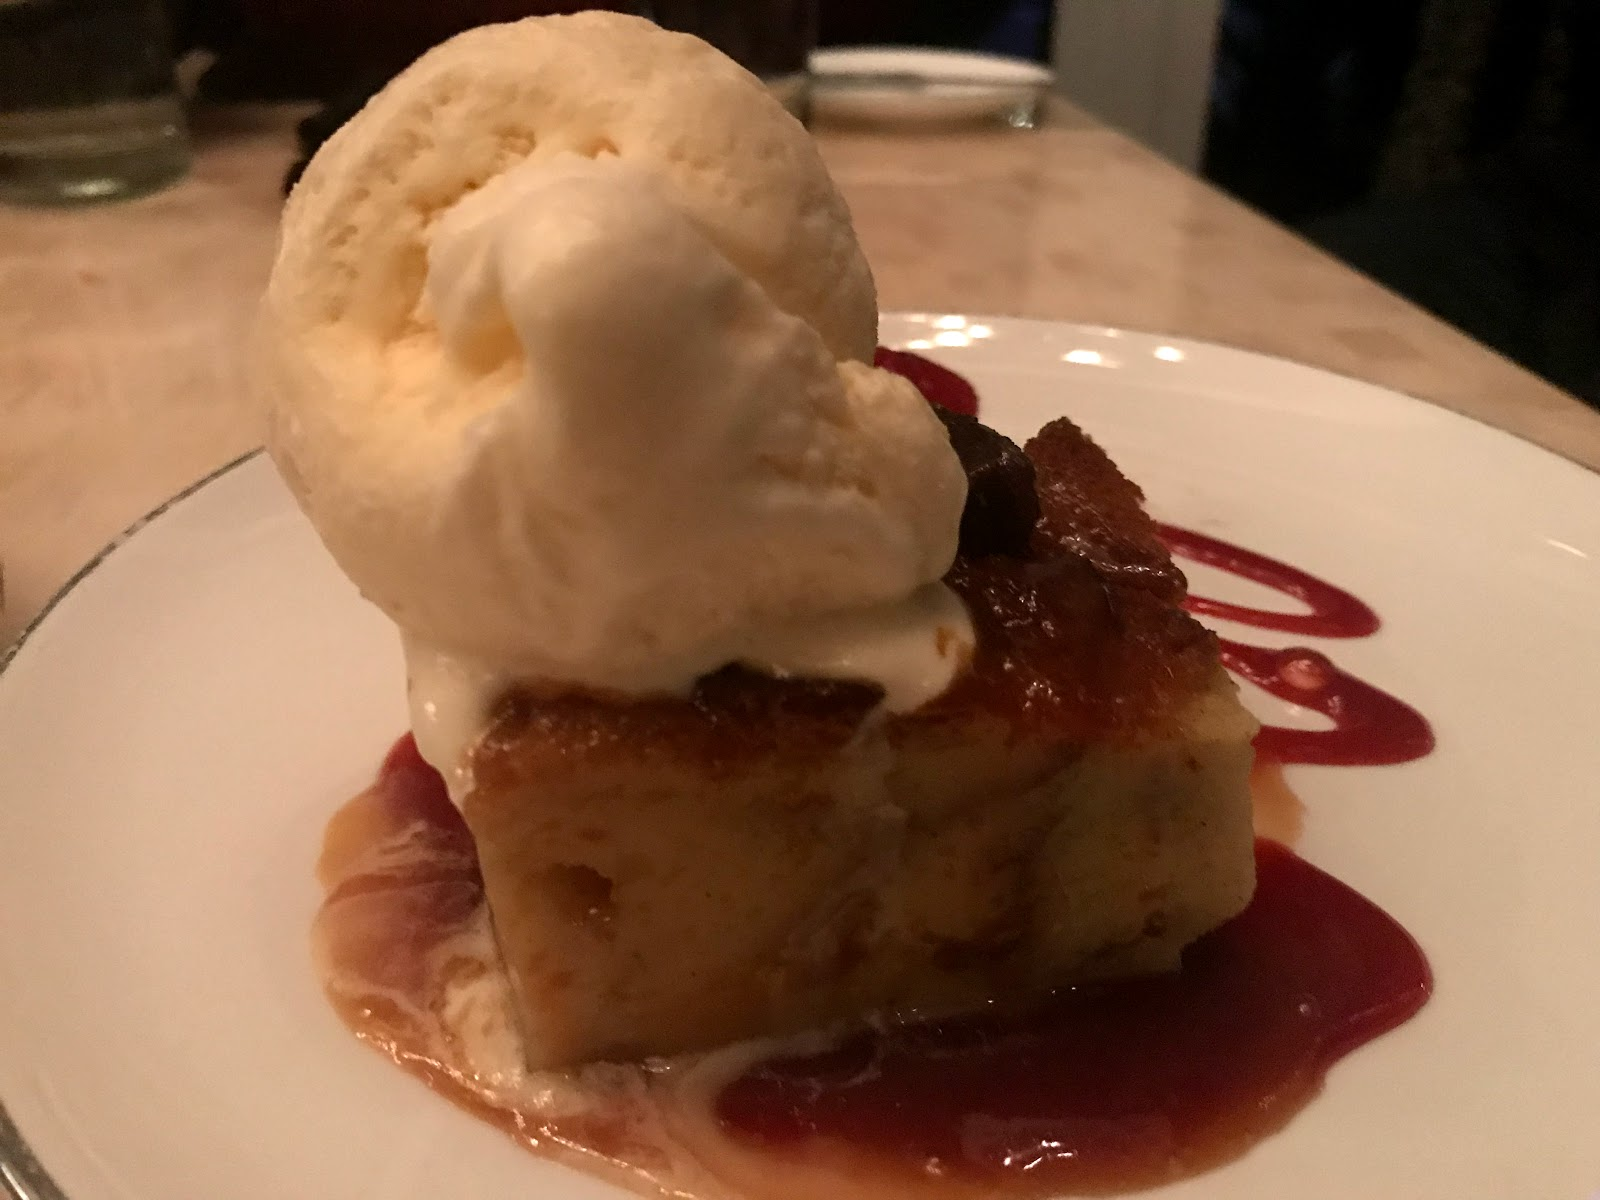 Image : Bread pudding at Jimmy's Seafood and Steakhouse:And can you believe I still made room to try the bread pudding and ice cream my husband ordered? By the time we left Jimmy's, we were full of food, fun, and laughter.